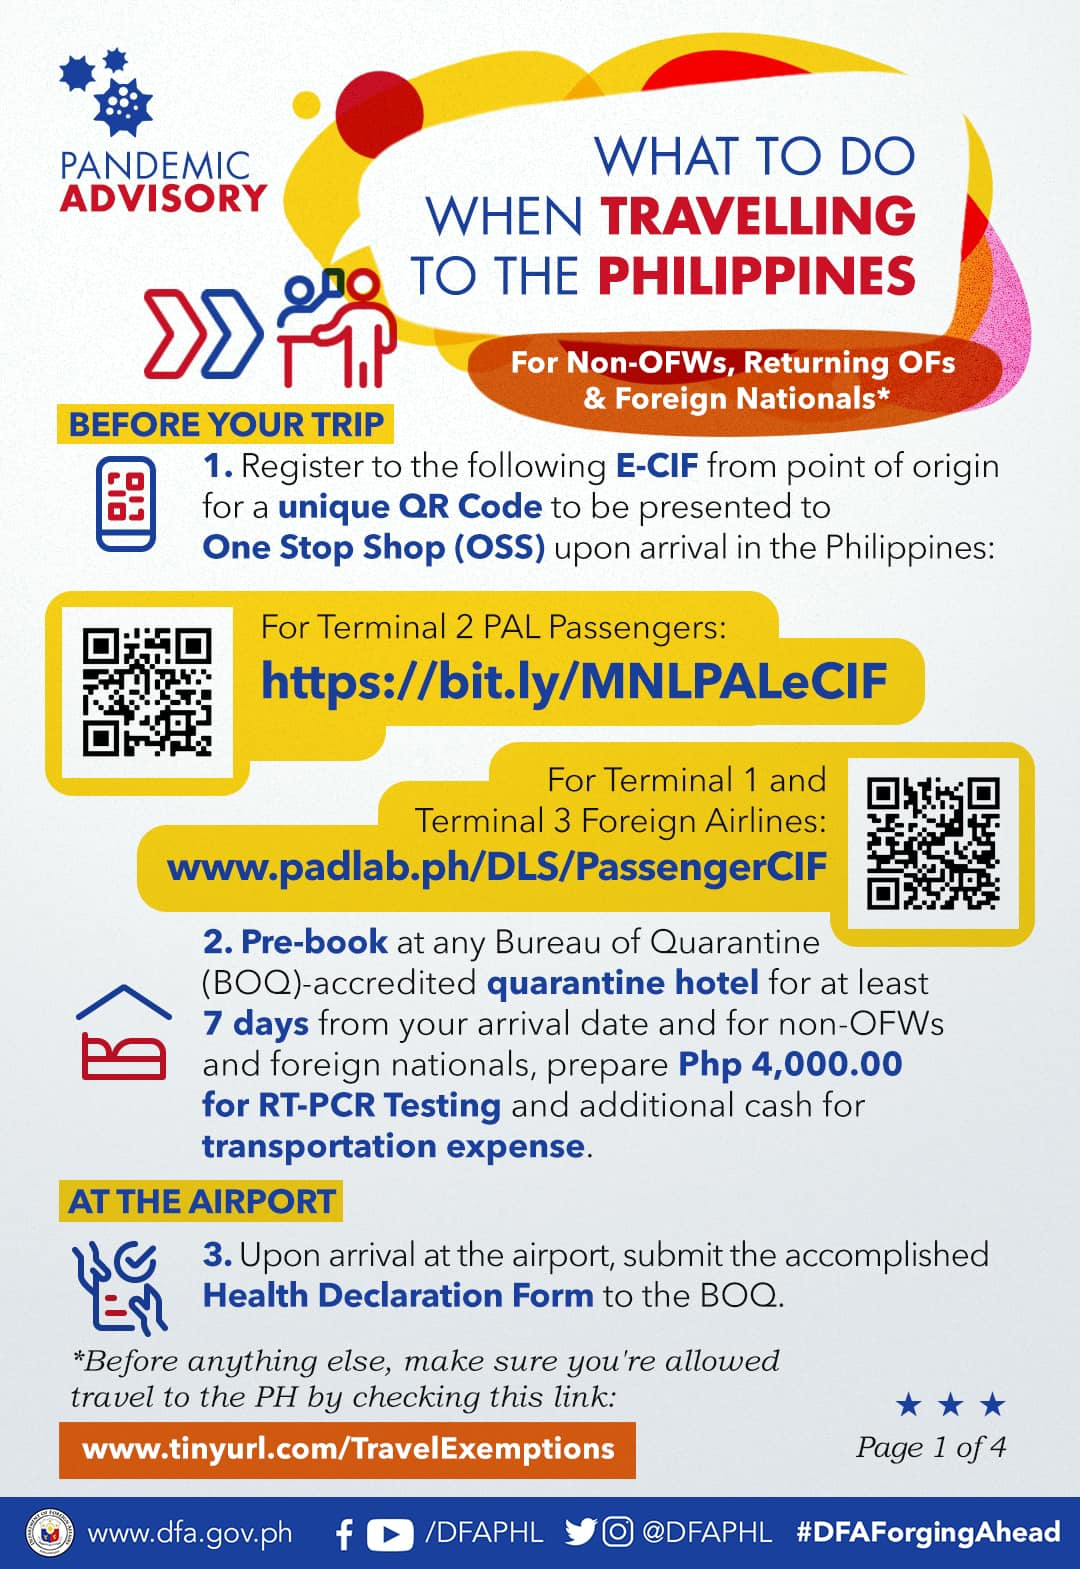 What to do when you intend to travel to the Philippines - Guide for Non-OFWs, returning Filipinos, and Foreign Nationals [INFOGRAPHIC]